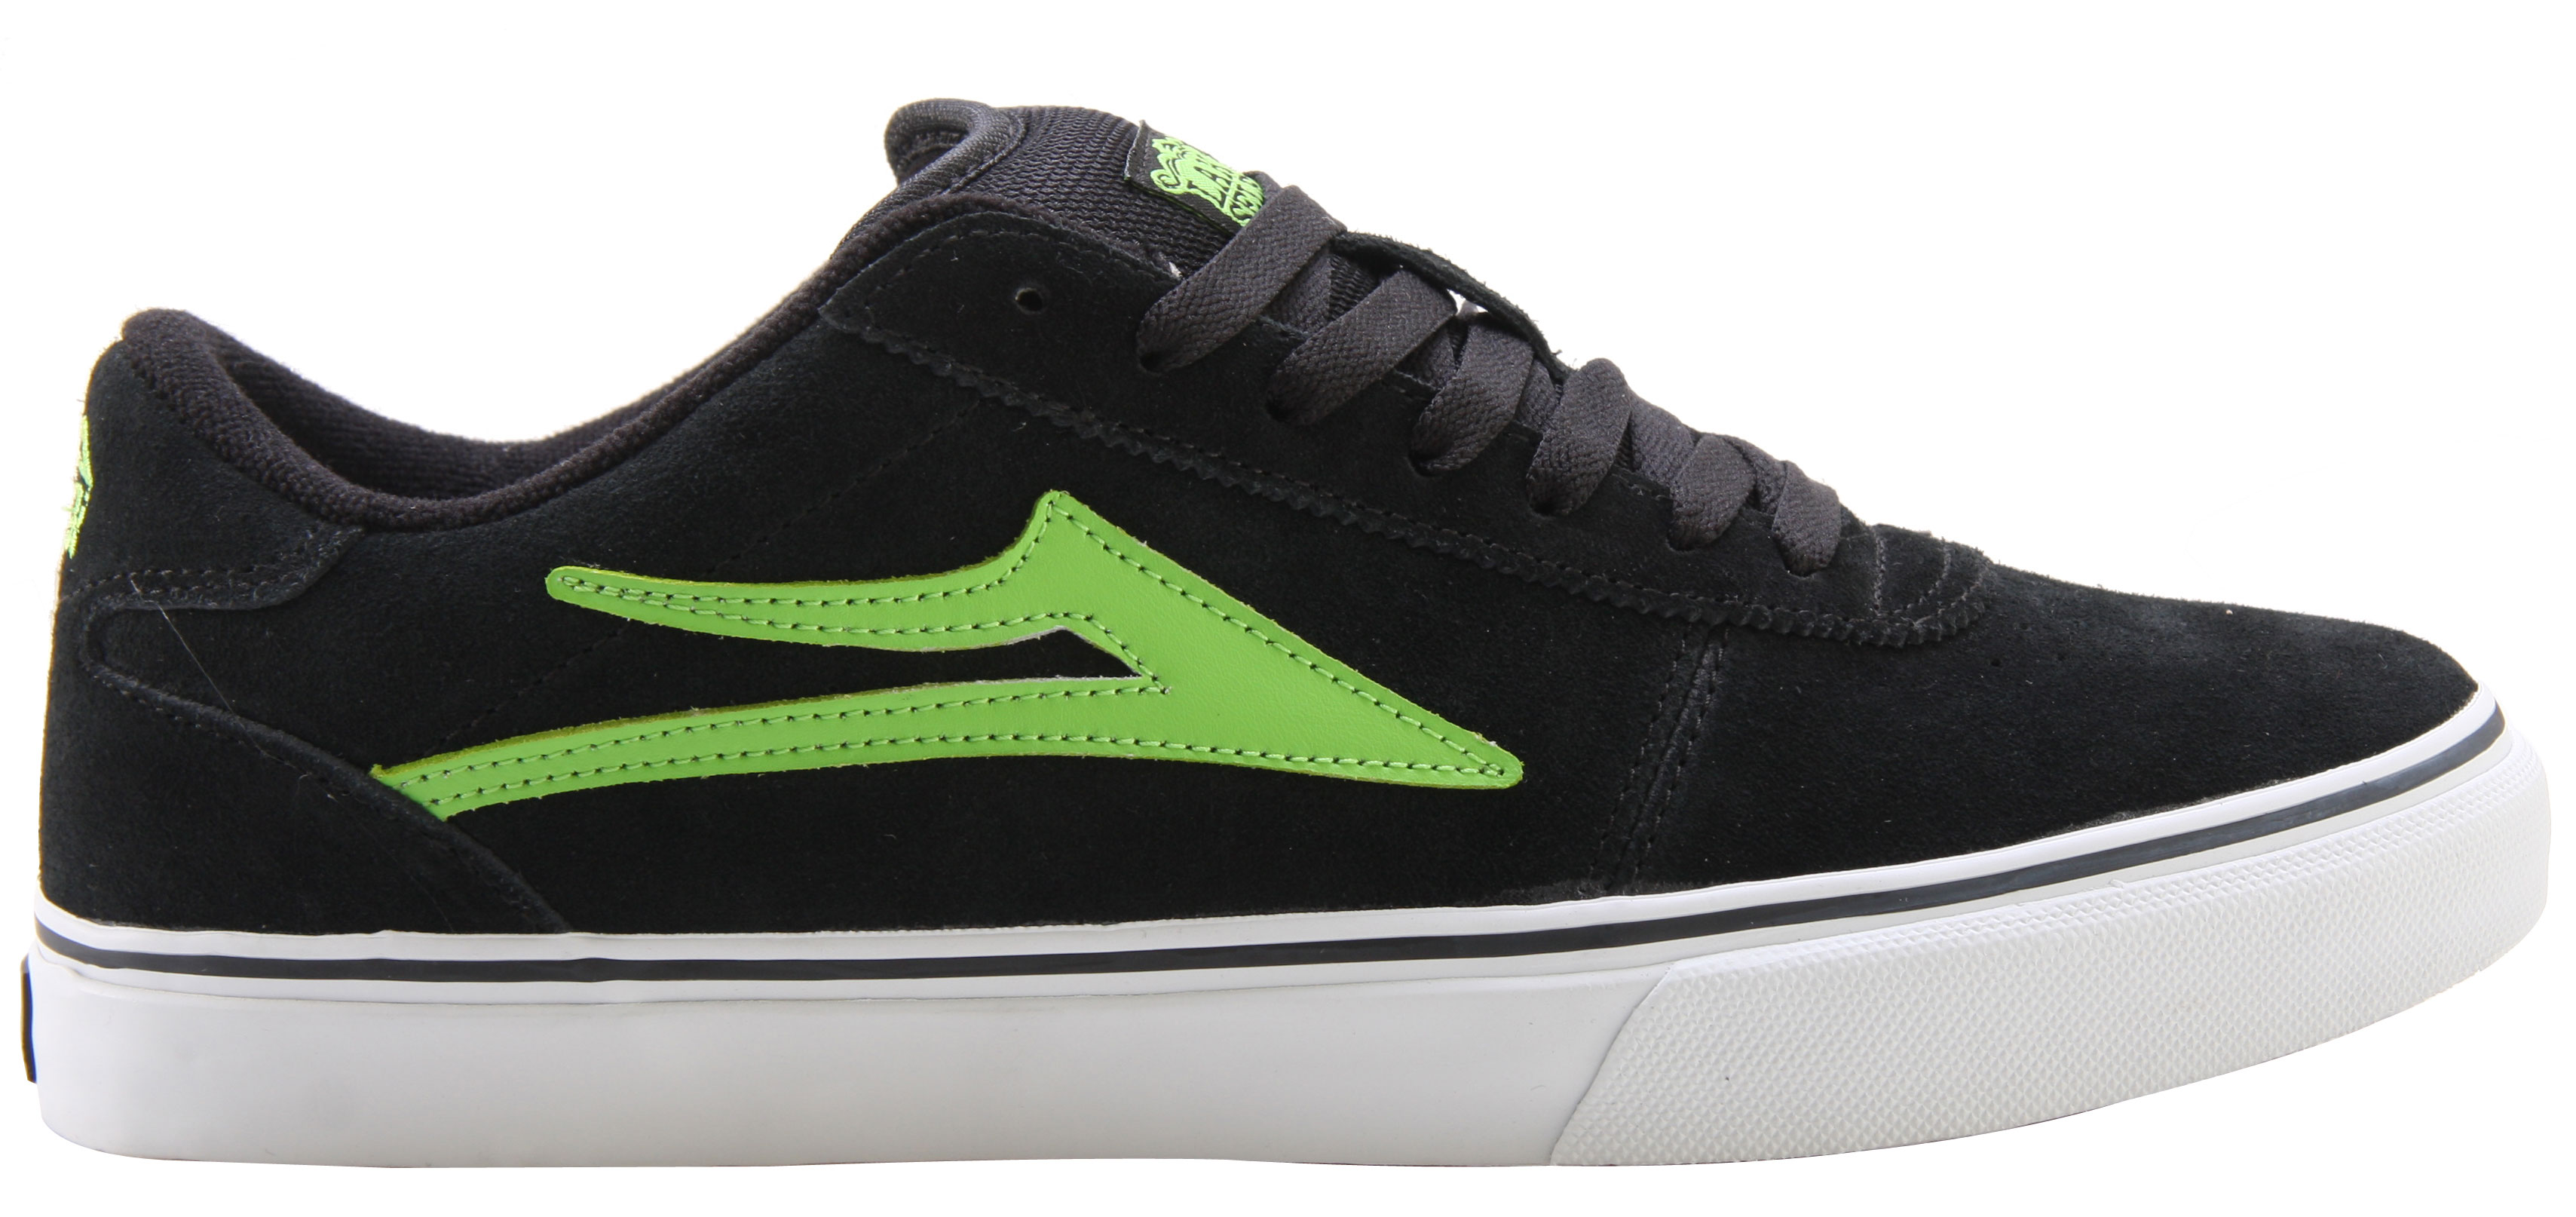 Skateboard Skate shoes should be comfortable, look great, be reasonably priced, and last longer than a few tough months. These Lakai Manchester Select Skate shoes, available in black with lime suede trim design, fit the bill. They are constructed with durability in mind and are built to last. With a comfortable cushioned sole and durable suede or suede/leather upper fabric, these shoes are sure to attract plenty of attention and cradle your feet like a fitted glove.Key Features of the Lakai Manchester Select Skate Shoes: Flexible Vulcanized Construction Tacky Gum Rubber Outsole Durable Suede Or Suede / Leather Upper Form Fitting Upper For Increased Board Feel Full-Length Shock Absorbing Insole - $55.95